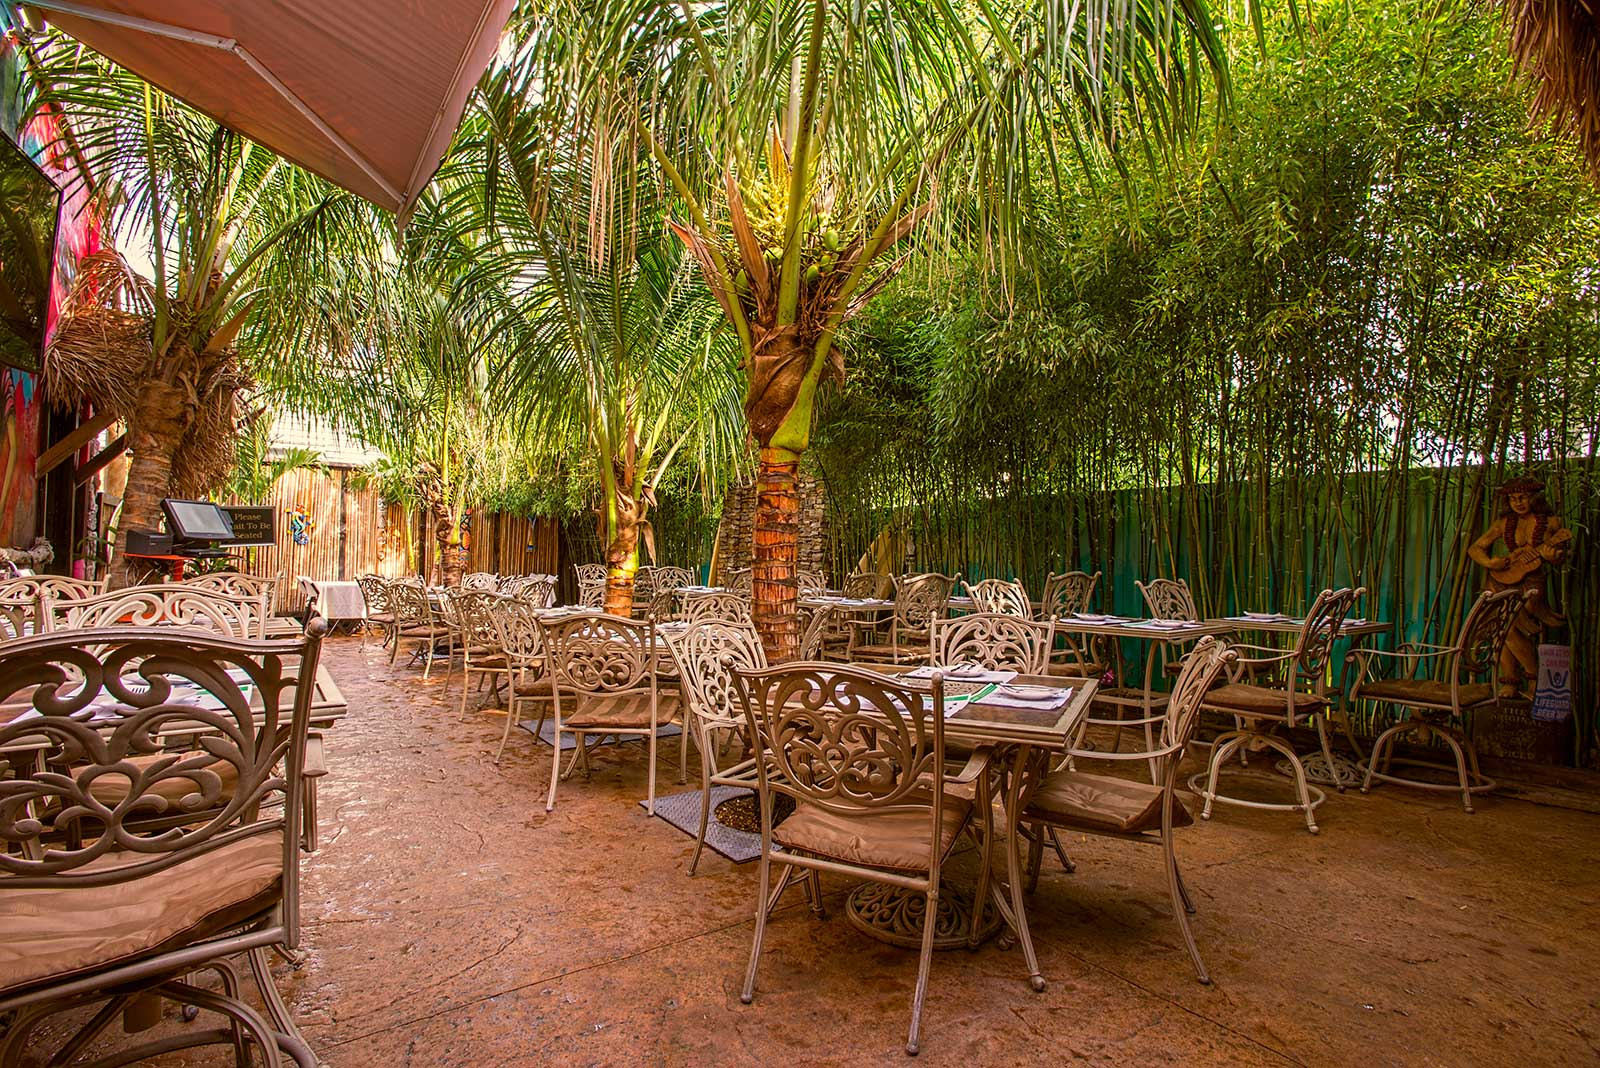 Outdoor Patio With Real Palm Trees In NJ